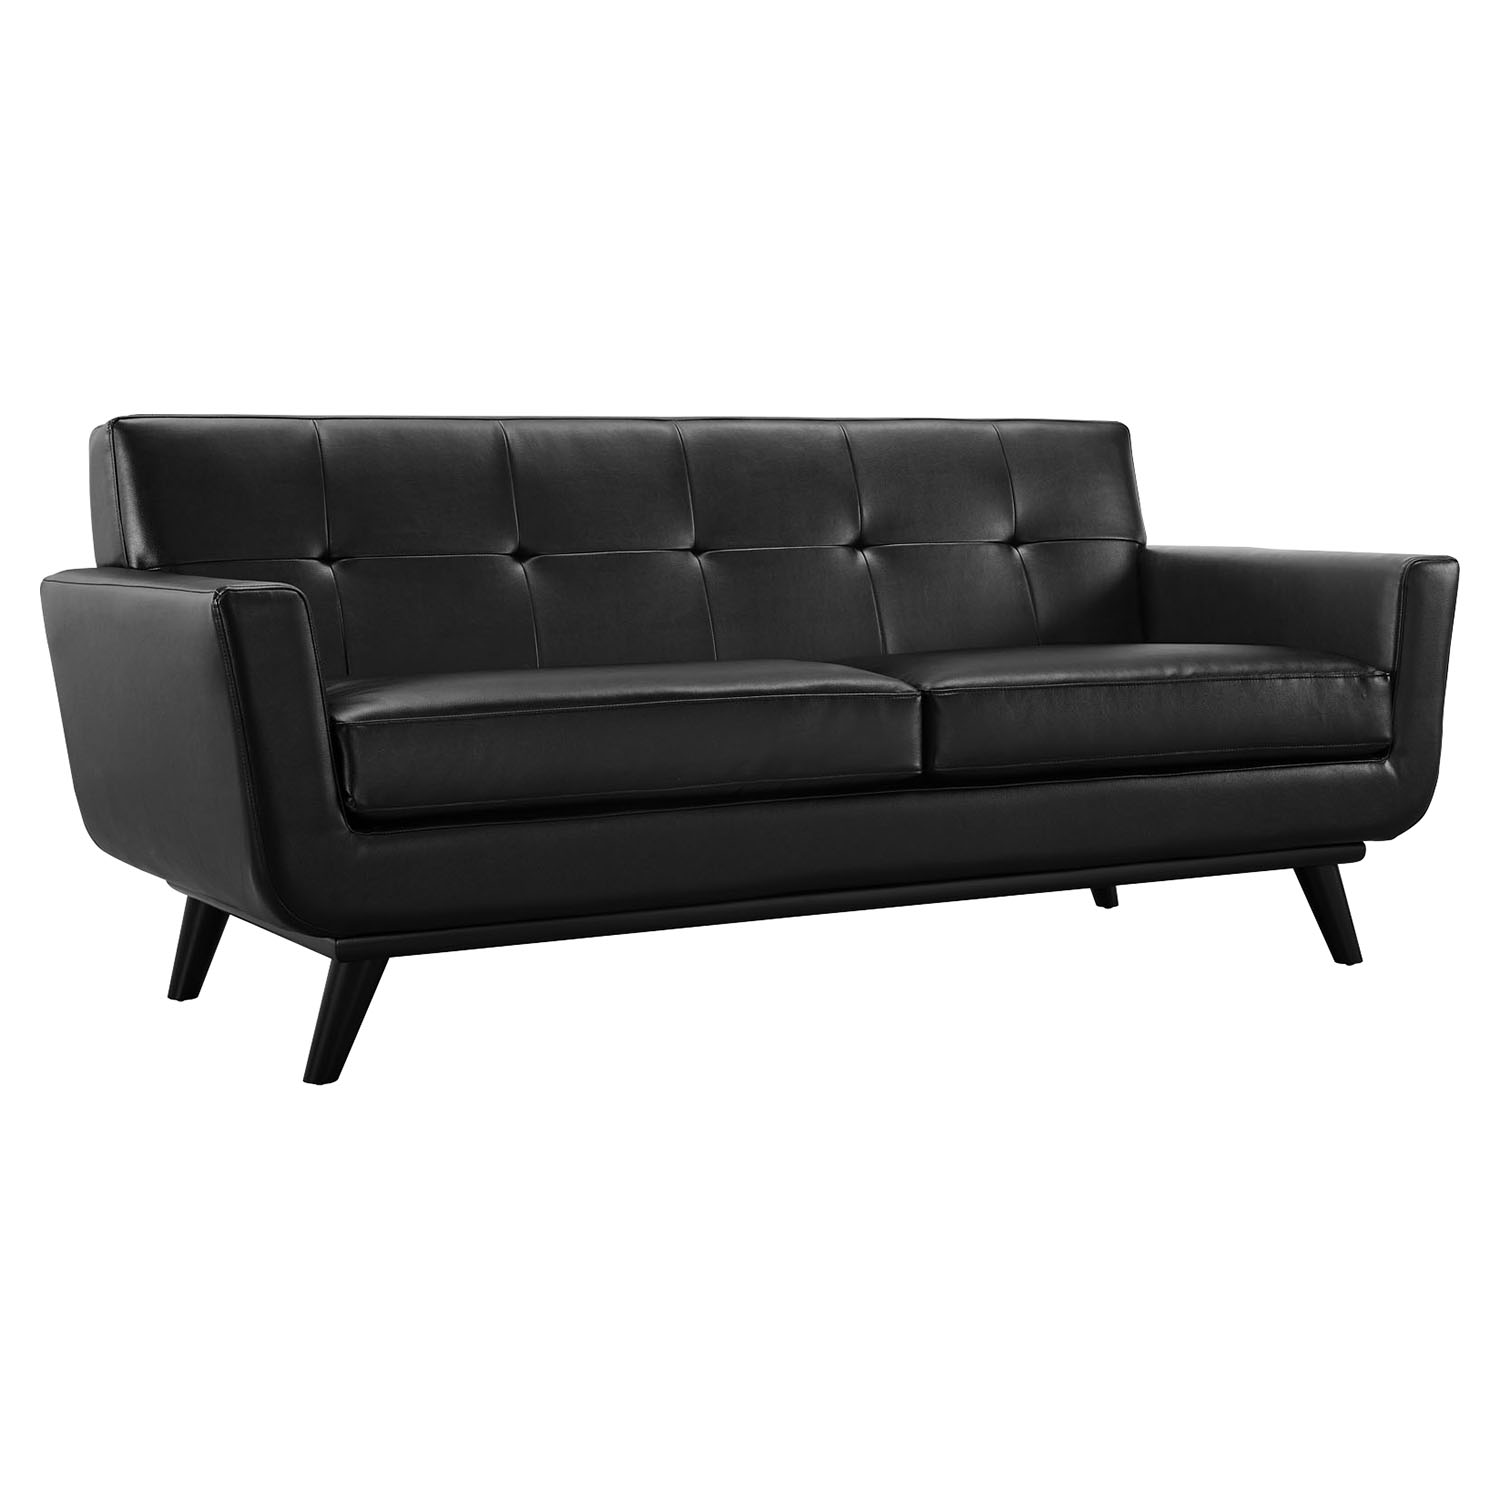 Engage 3 Pieces Leather Sofa Set - Flared Legs, Black - EEI-1764-BLK-SET